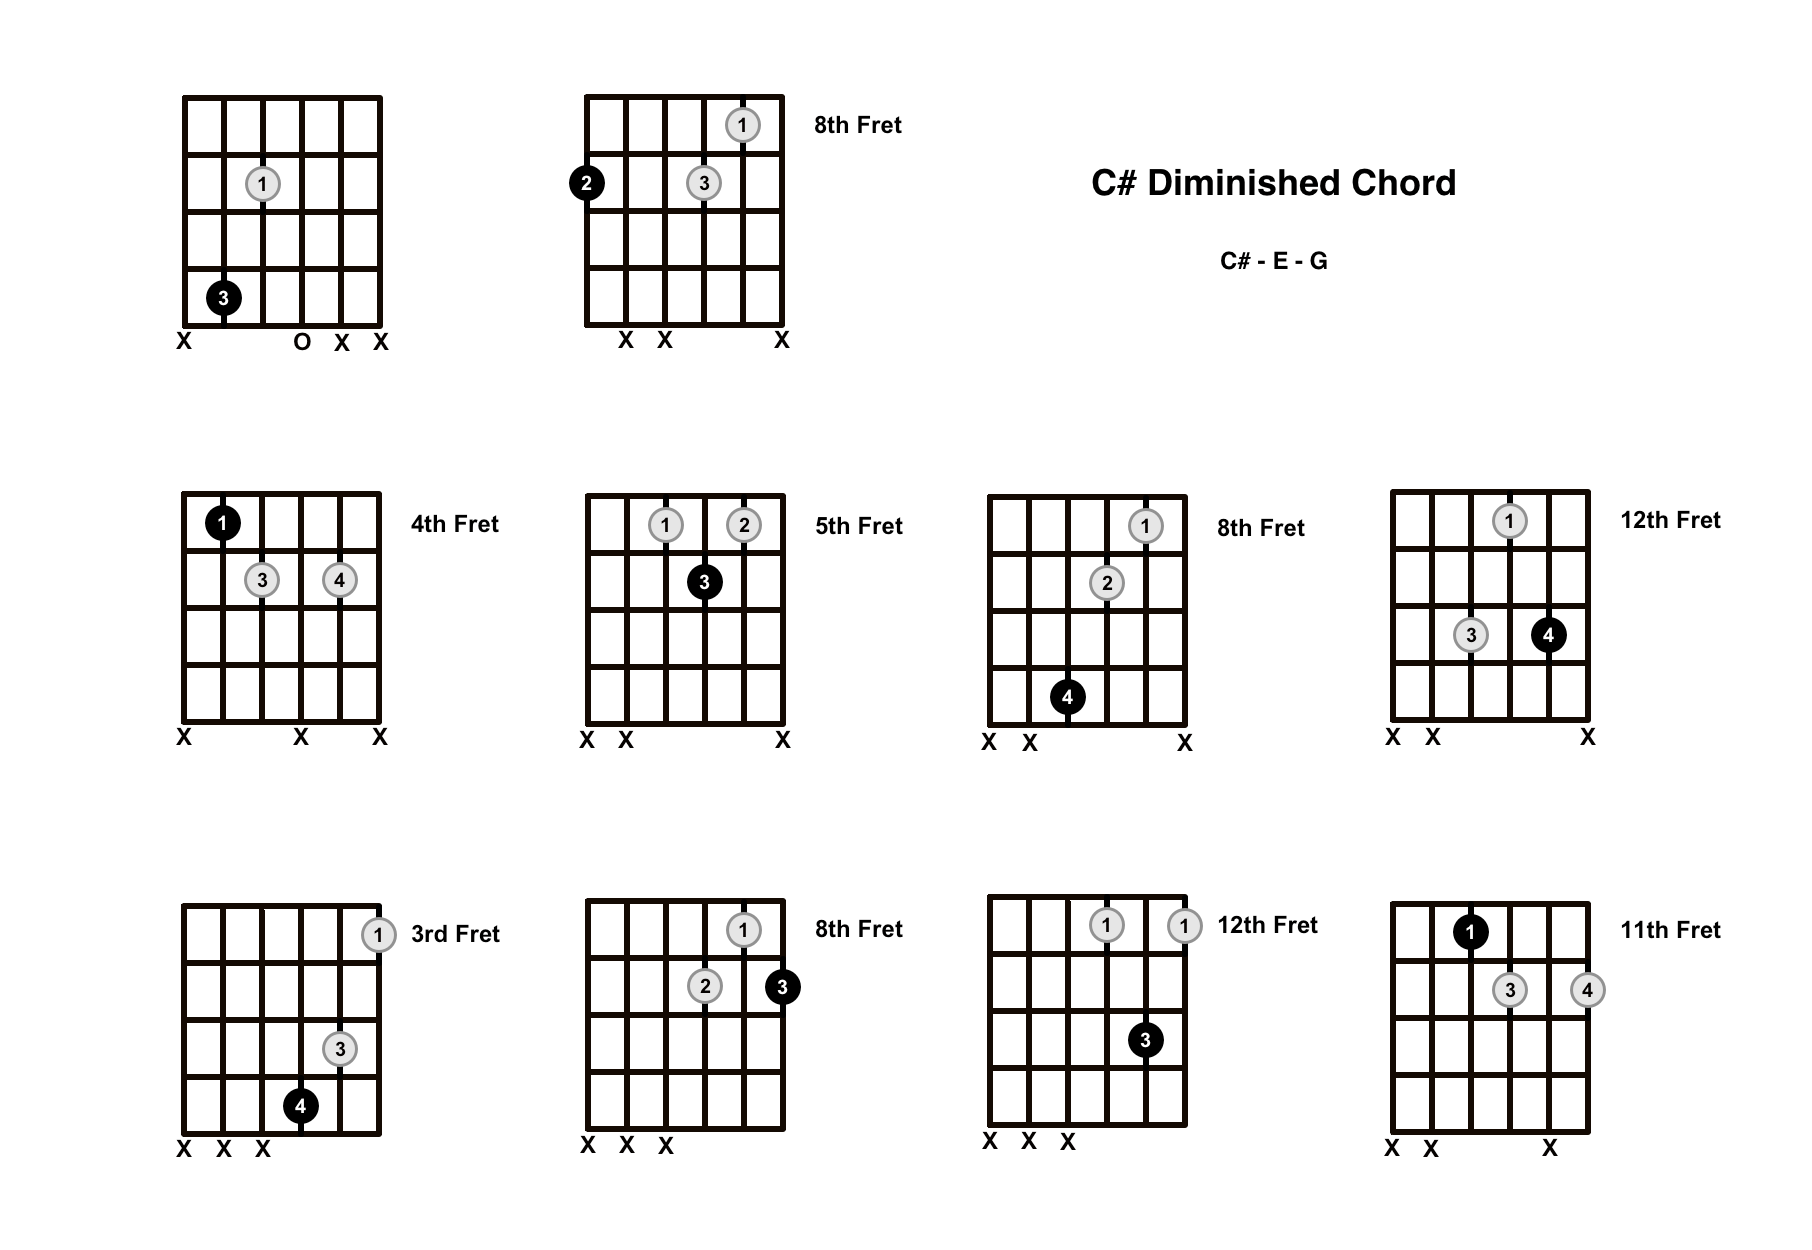 C Sharp Diminished Chord on the Guitar (C# dim)